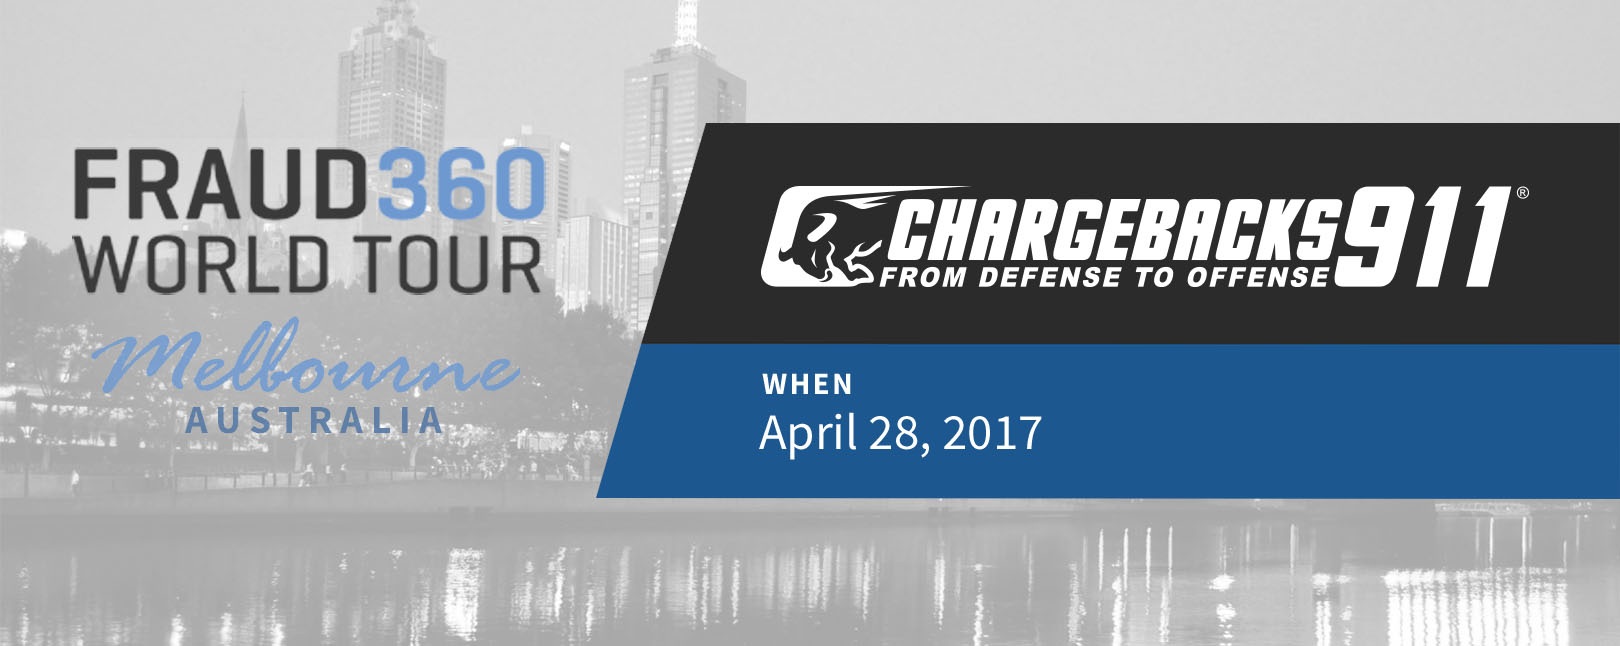 Chargebacks911 at Fraud360 World Tour - Melbourne